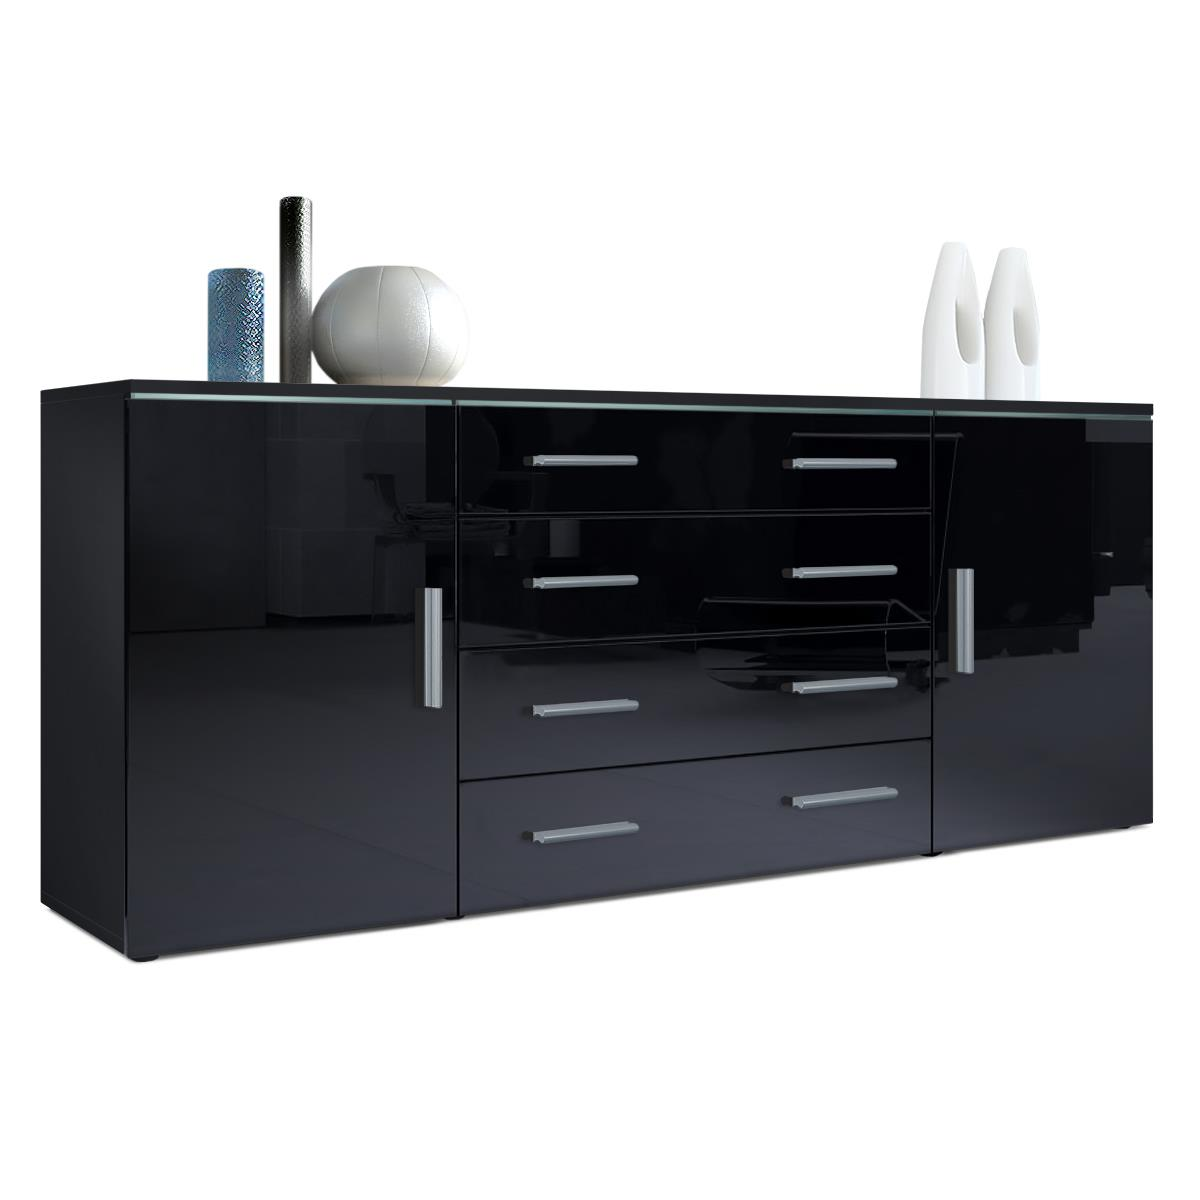 sideboard faro v2 in hochglanz mit led zierglasleiste. Black Bedroom Furniture Sets. Home Design Ideas